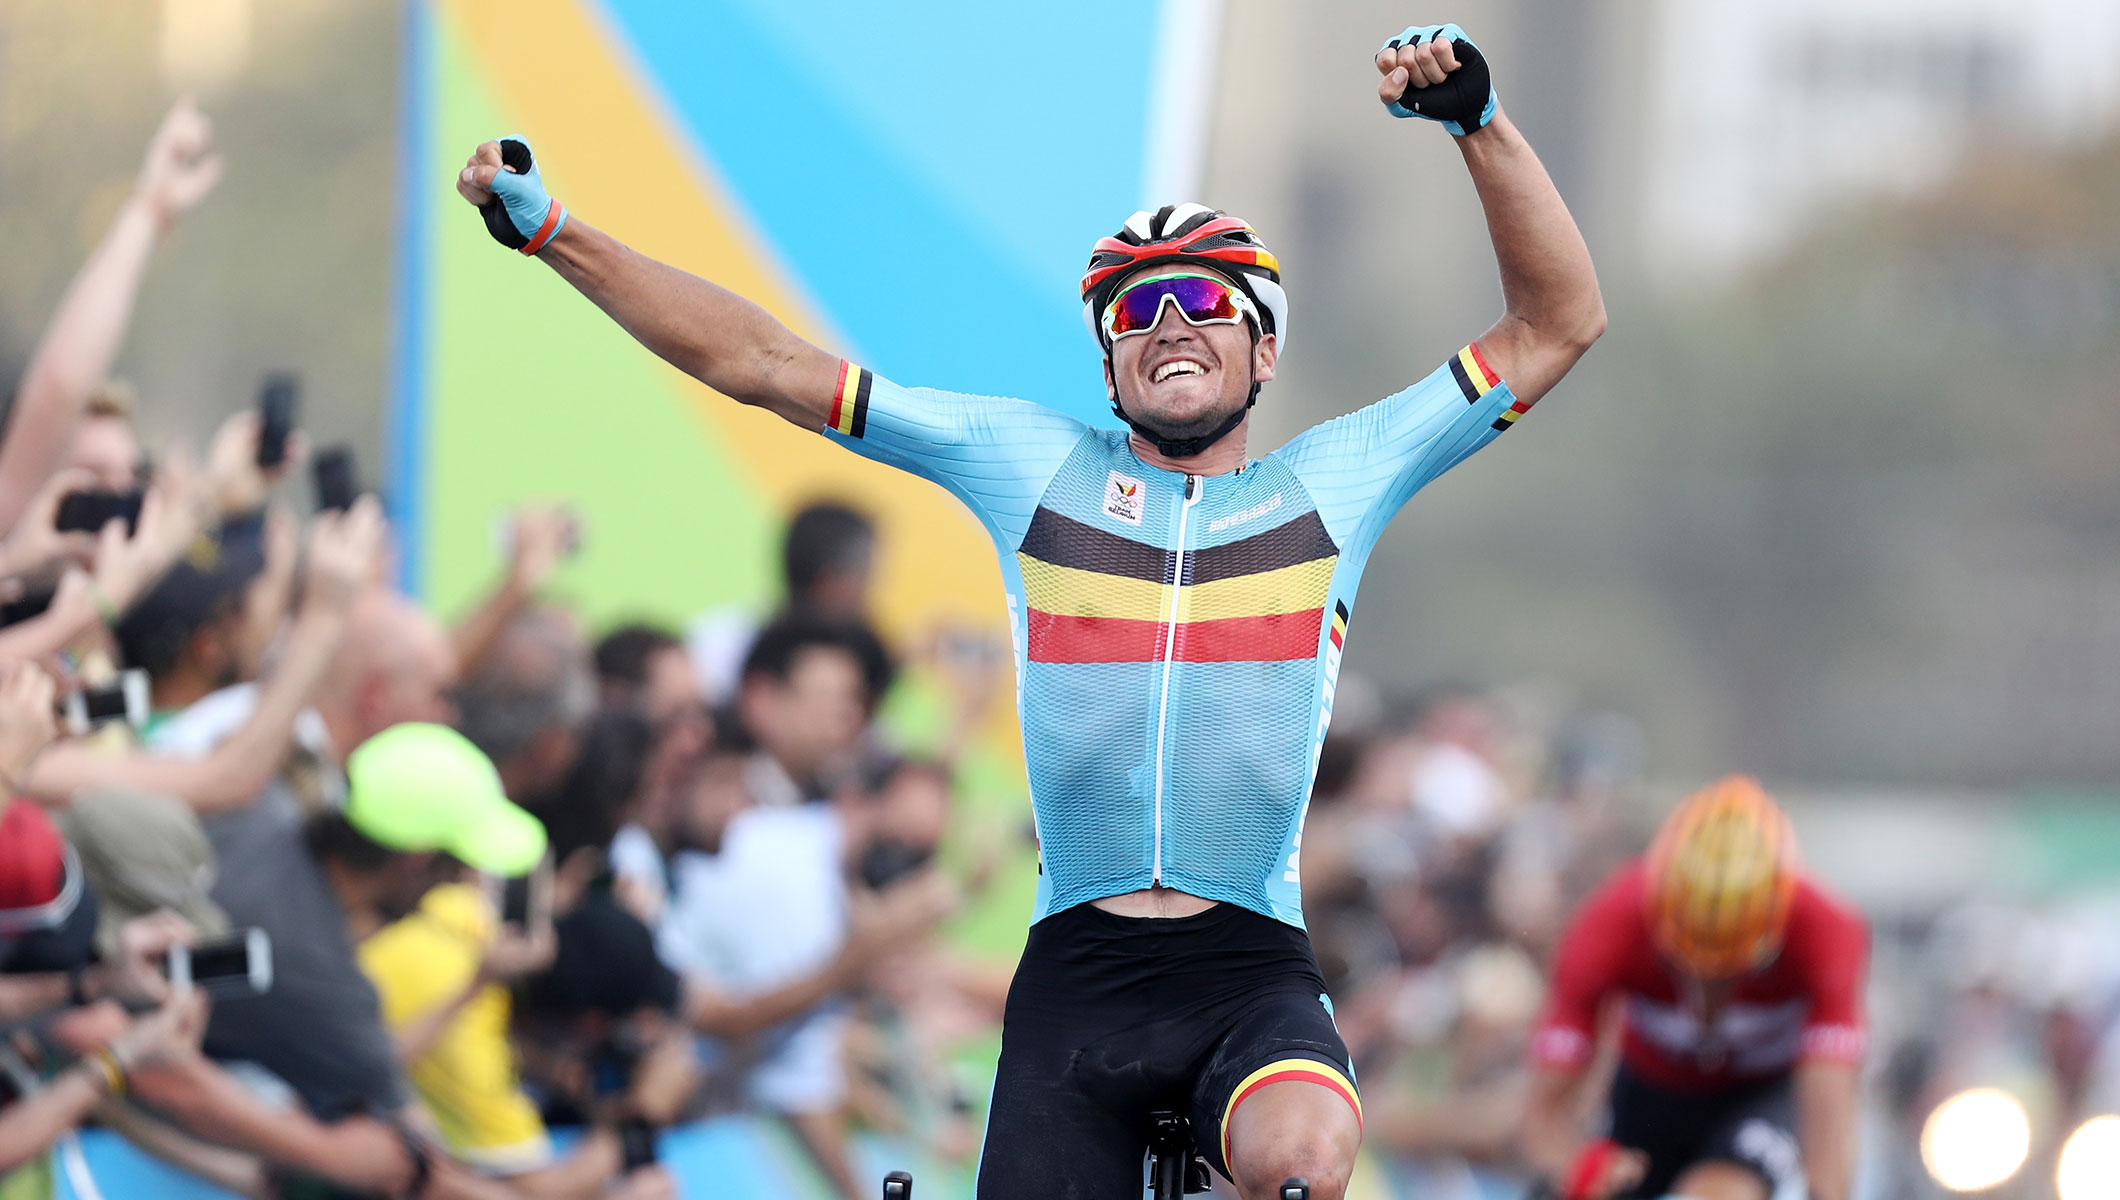 Greg van Avermaet conquers the hills of Brazil